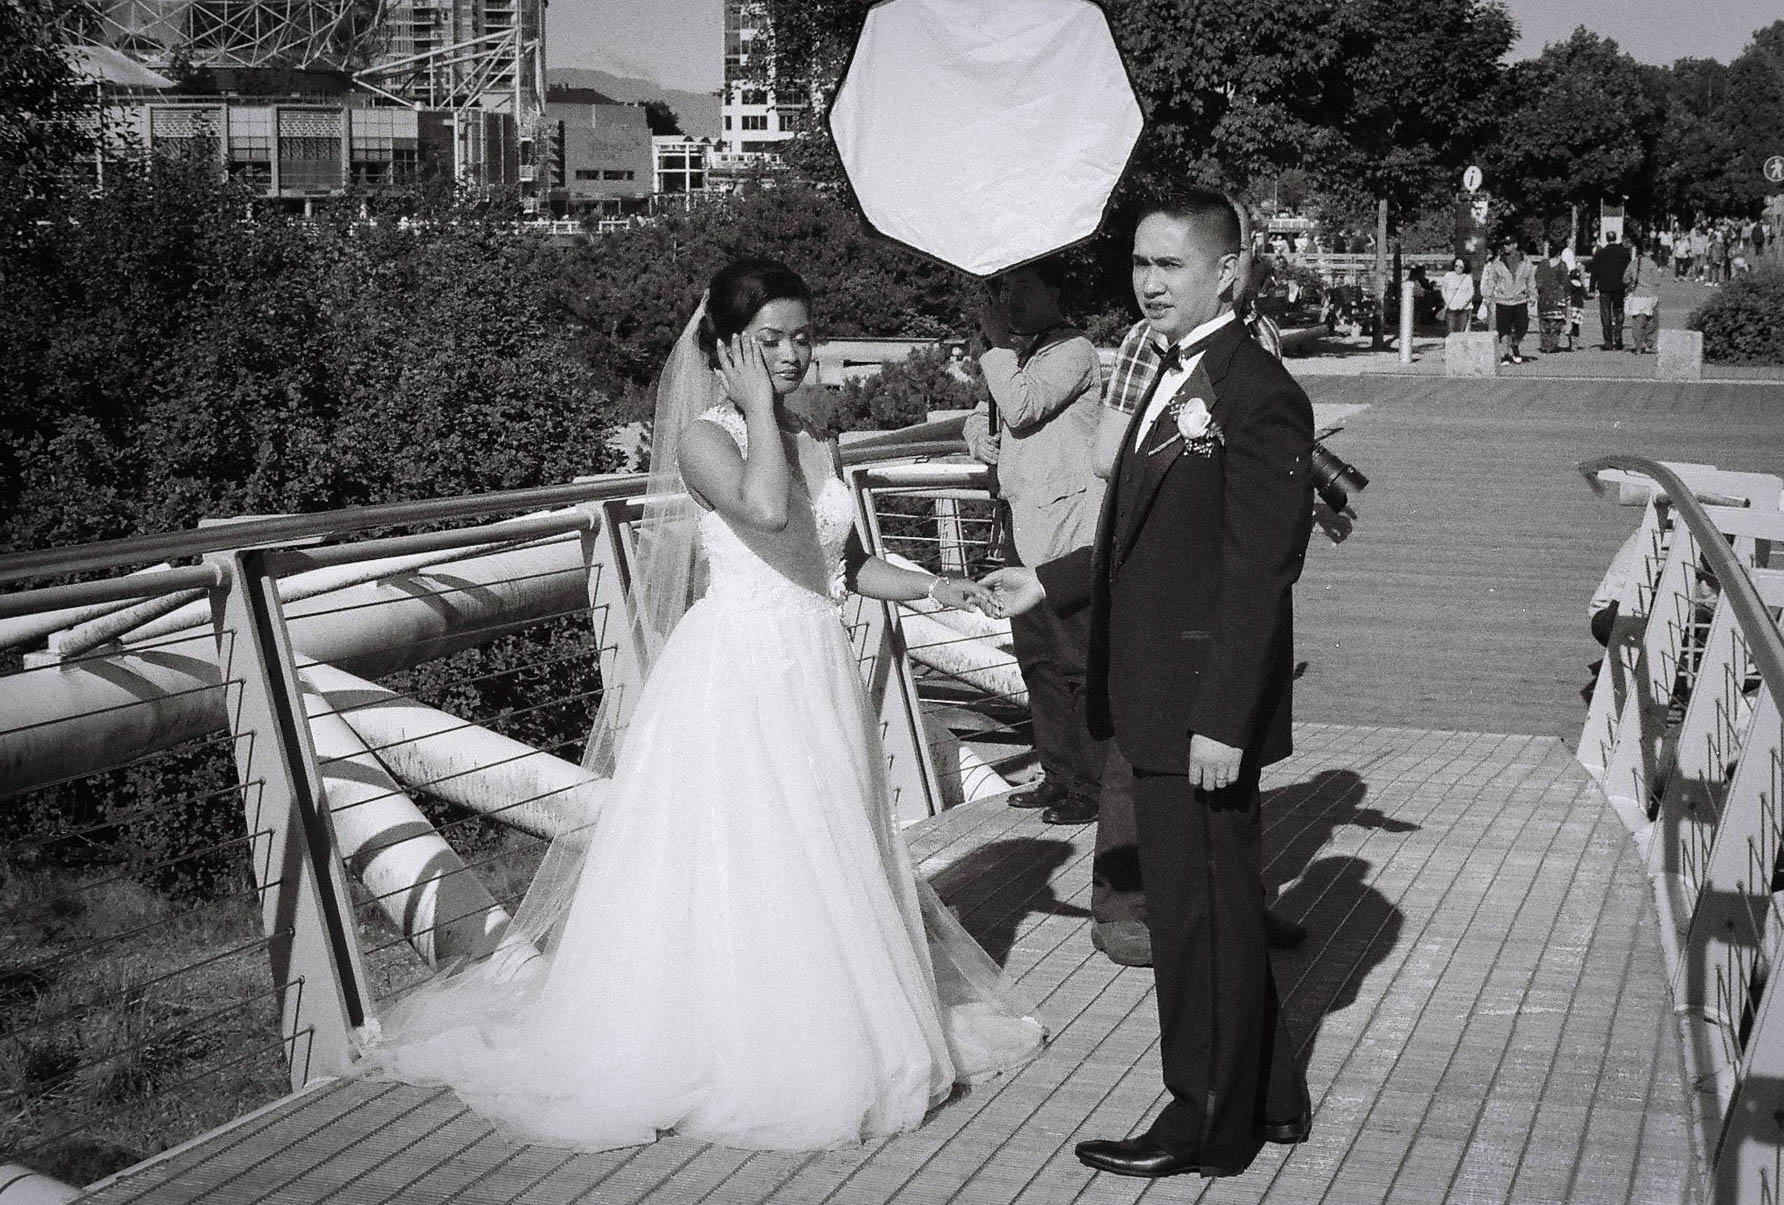 Wedding day Olympic Village, Vancouver Canon L1, 50mm F1.4  TMax 400 film 7.16